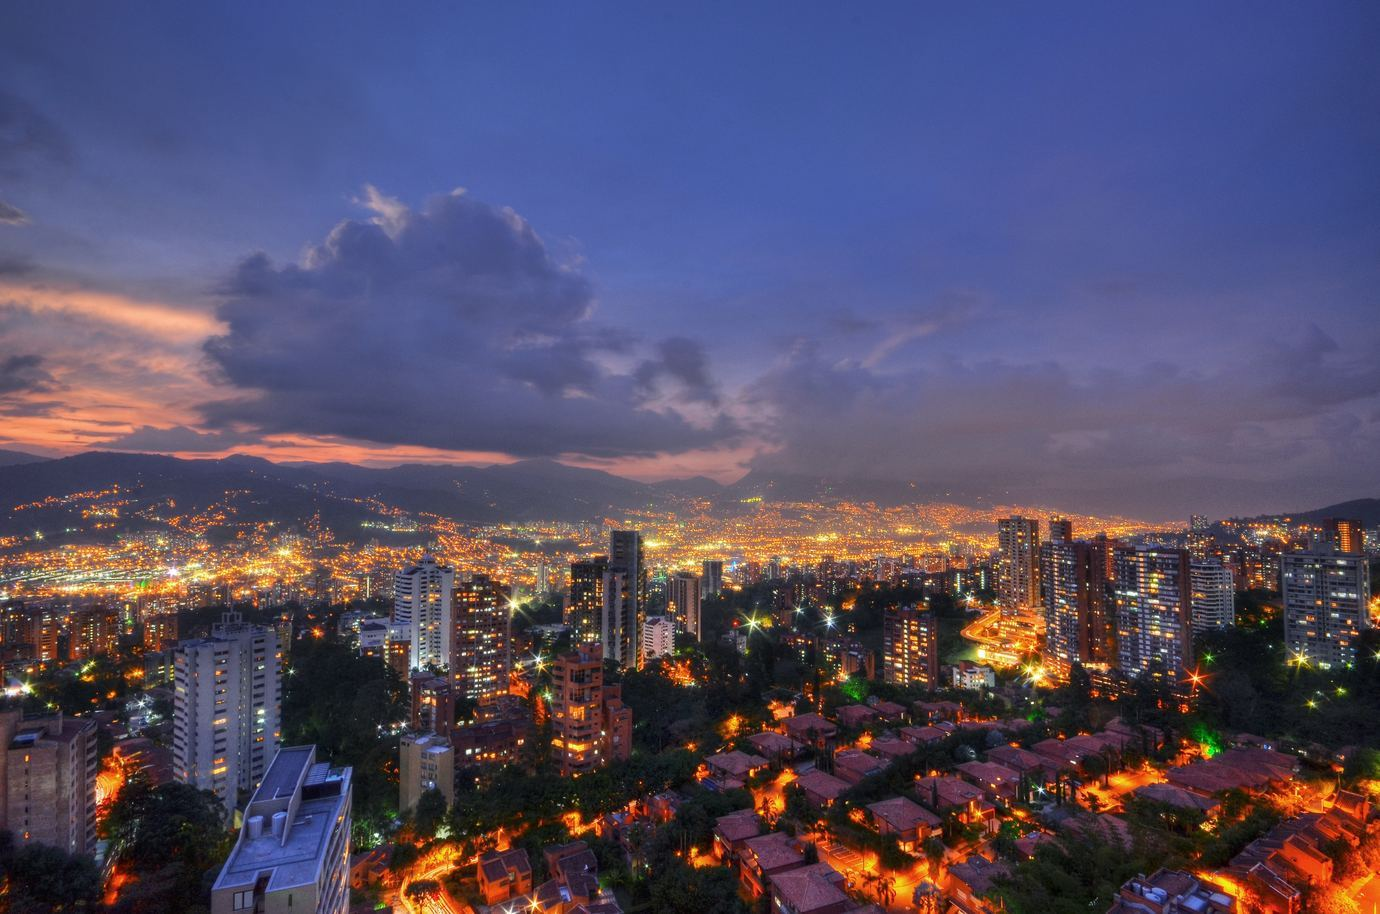 va night picture of the city and top outsourcing locations in the Philippines